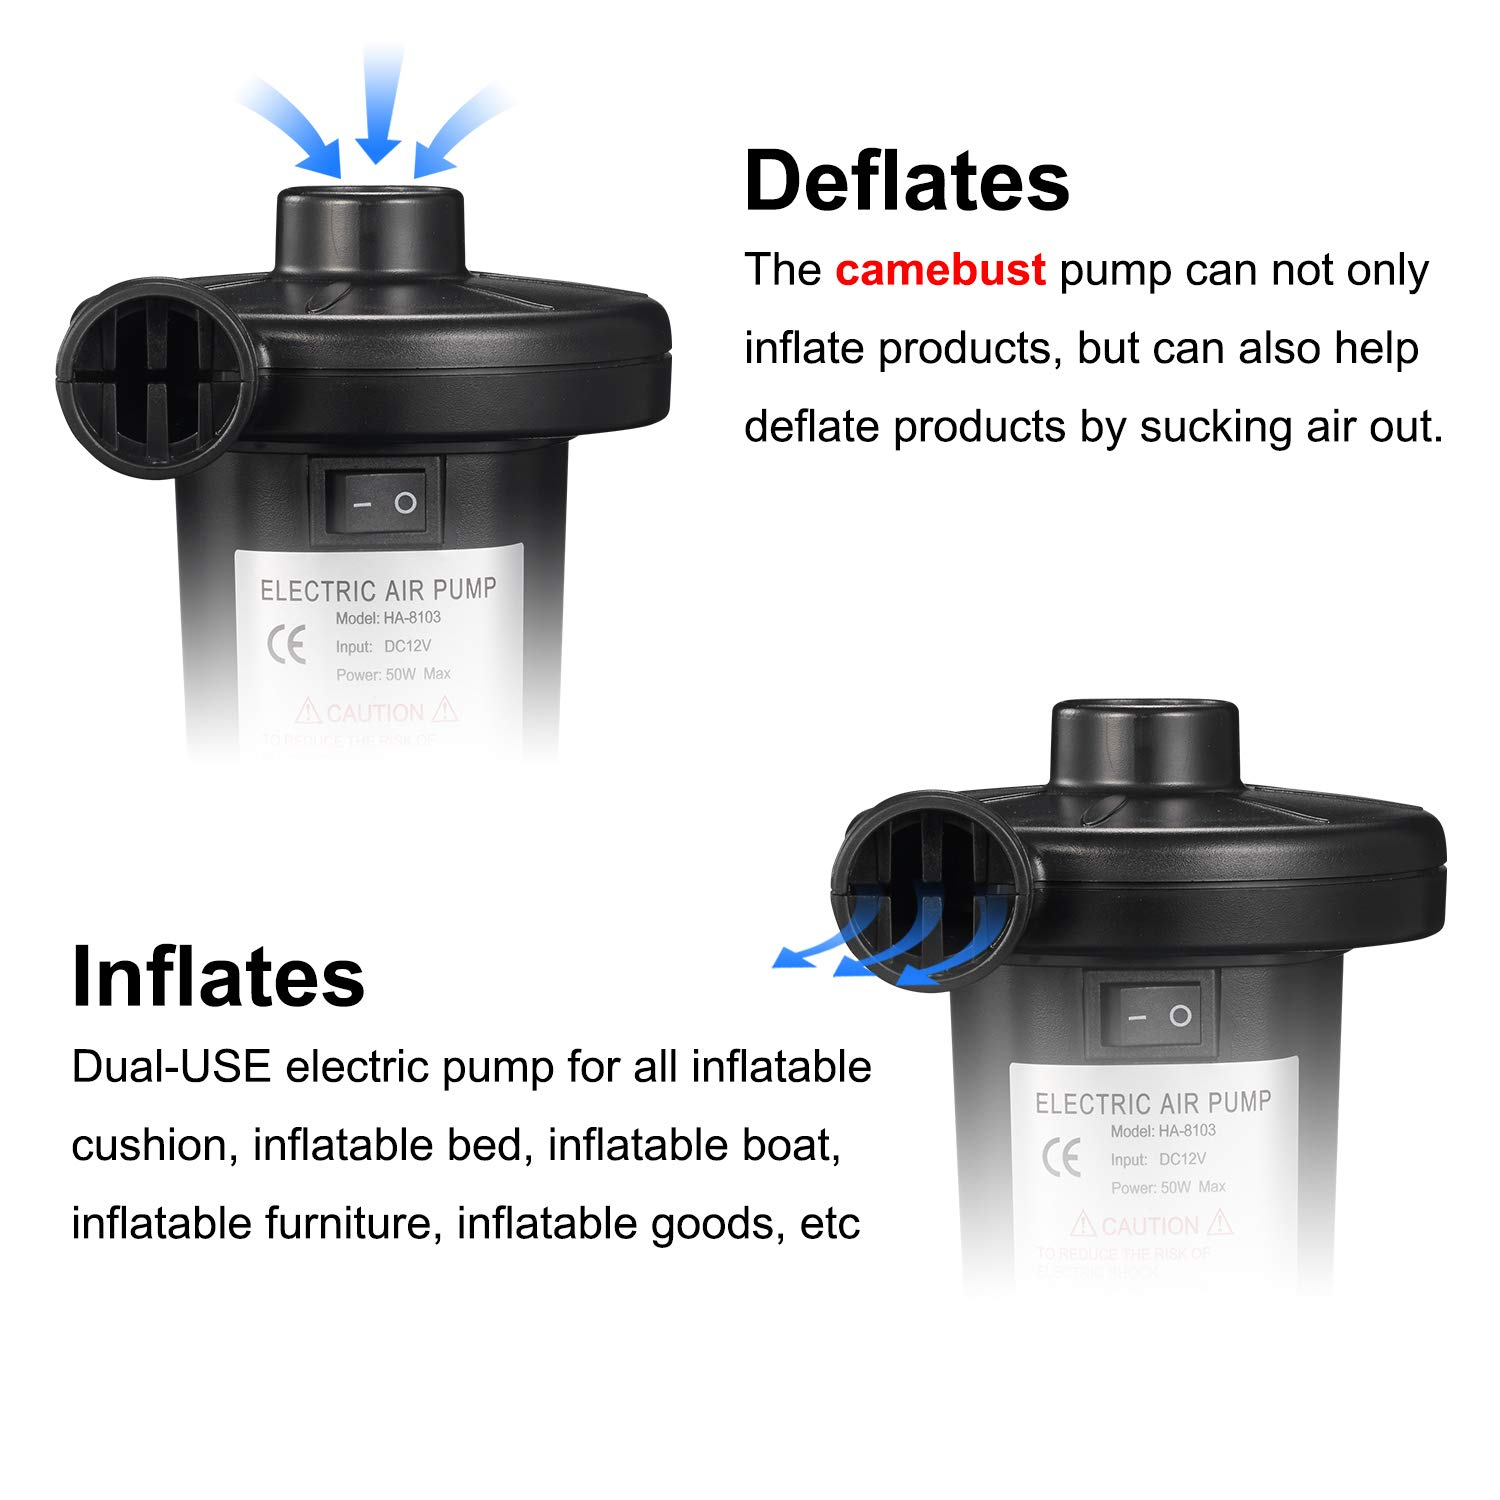 Black camebust Air Pump for Inflatables Portable AC 110V//DC 12V Quick-Fill with 3 Nozzles Blow up Air Mattresses Beds Boats Swimming Ring Iflatable Pool Toys